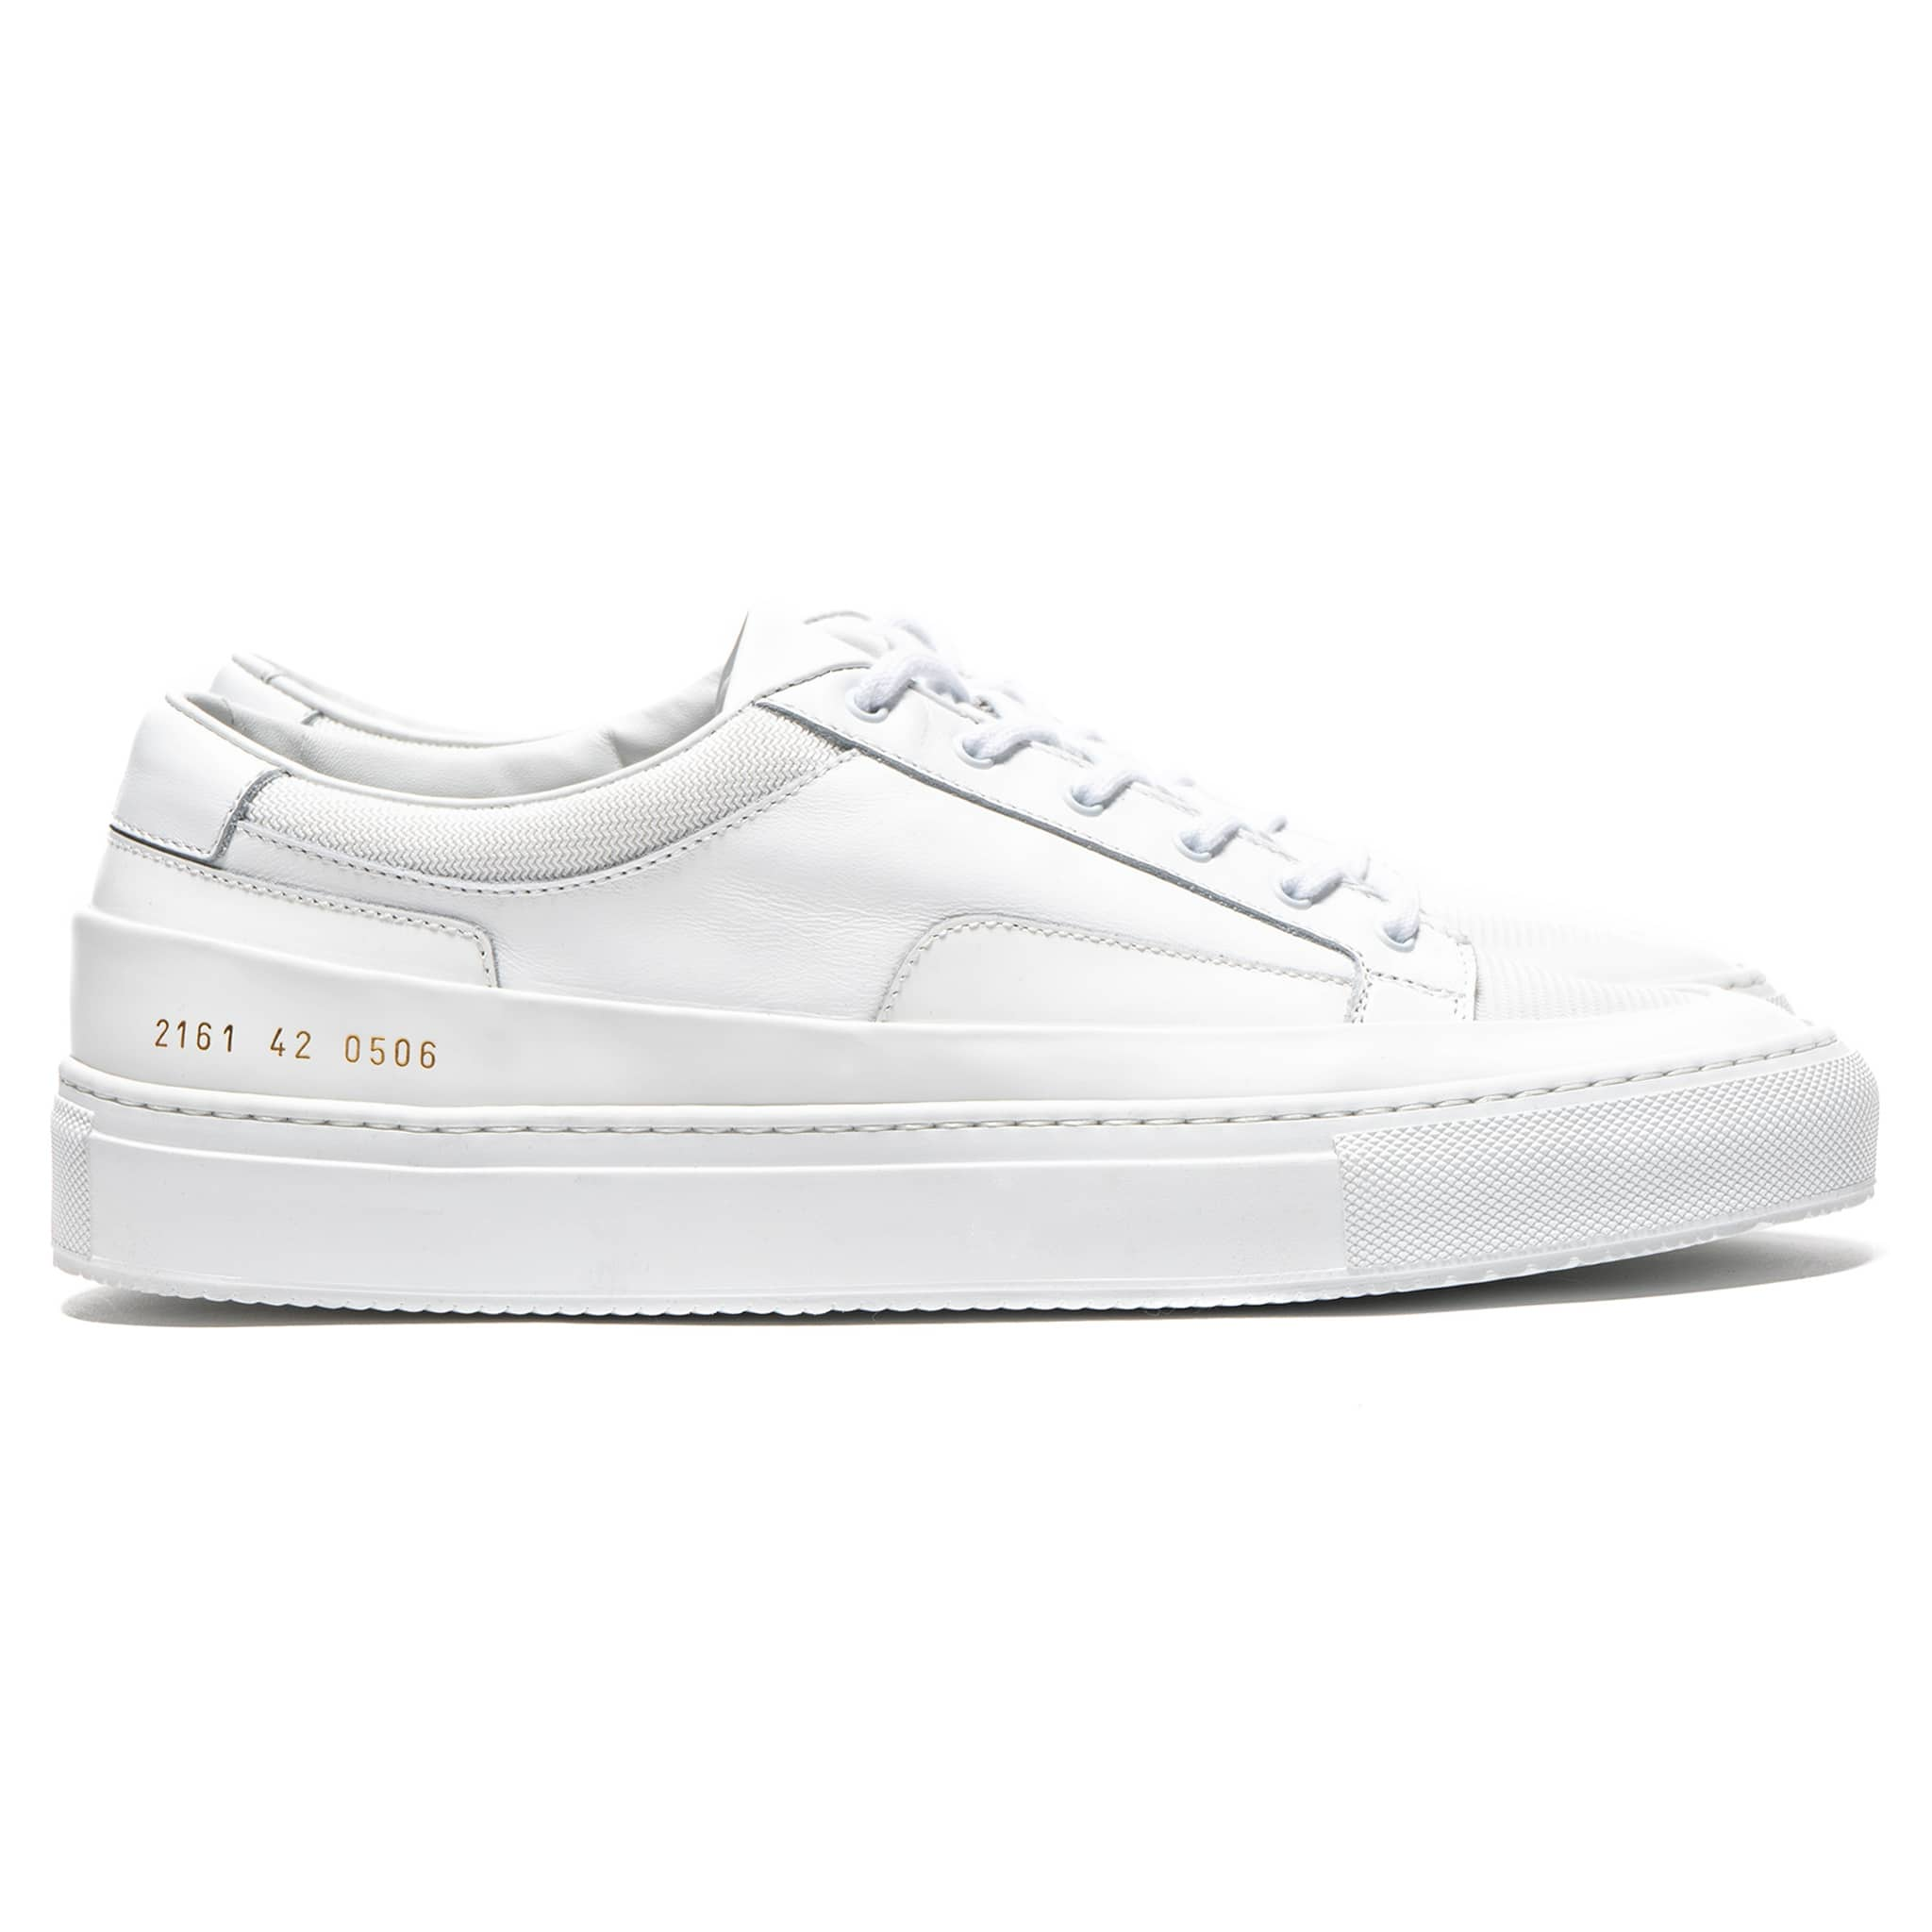 3b4d69a8e883c Common Projects FW18